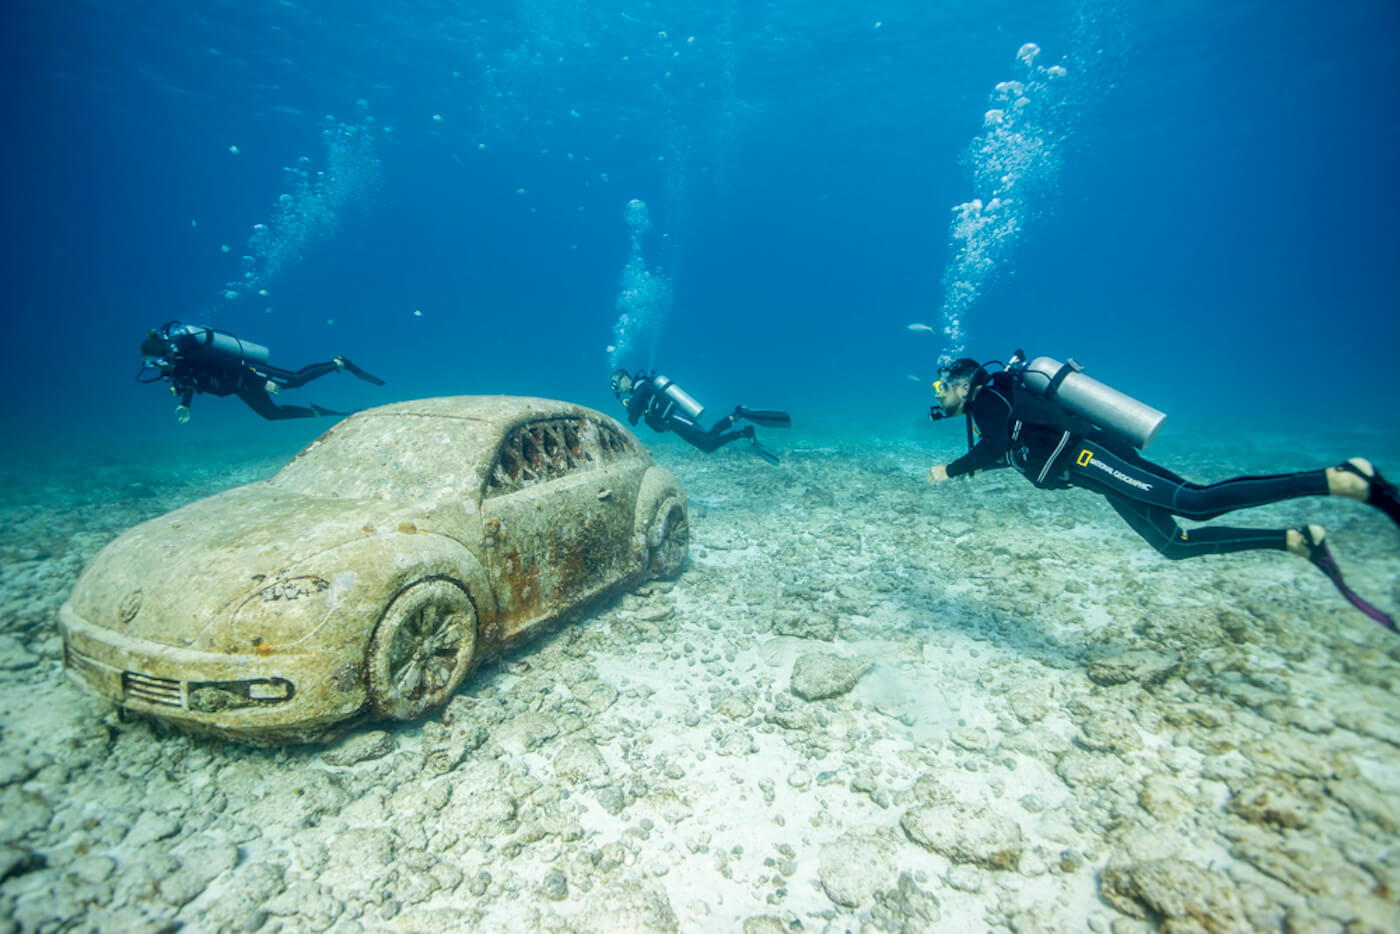 MUSA-Underwater-Museum-Cancun-Dive-Center-Caribbean-Connections-11